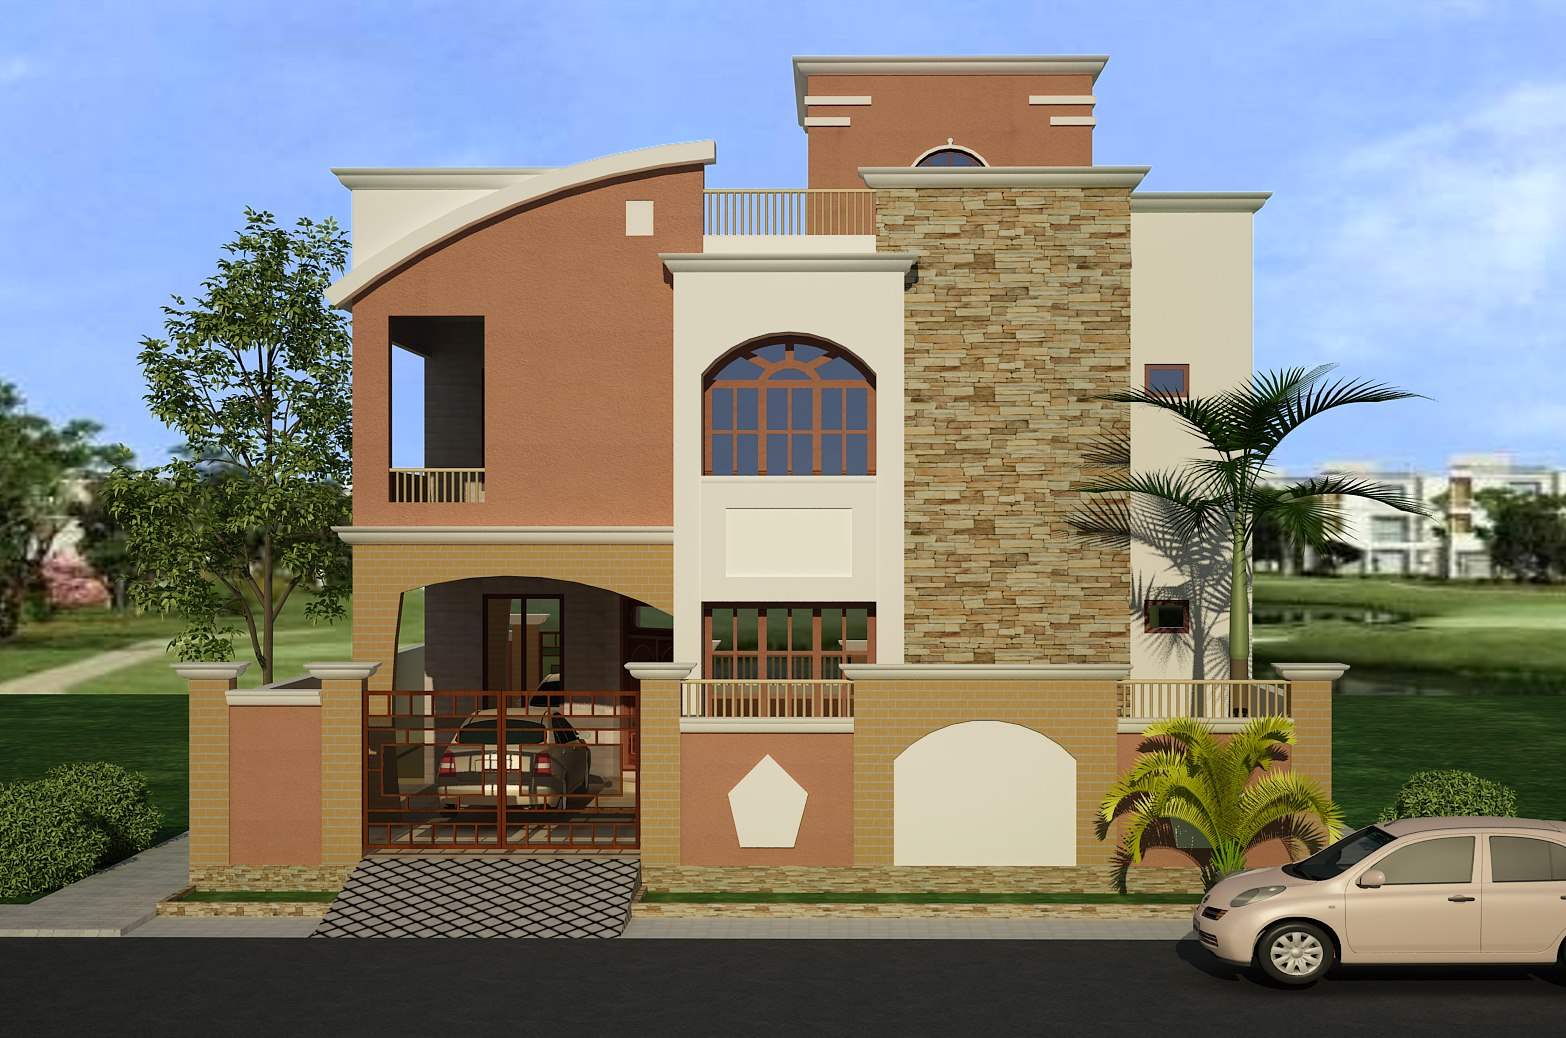 Front Elevation Of The Houses : Front house elevation native home garden design